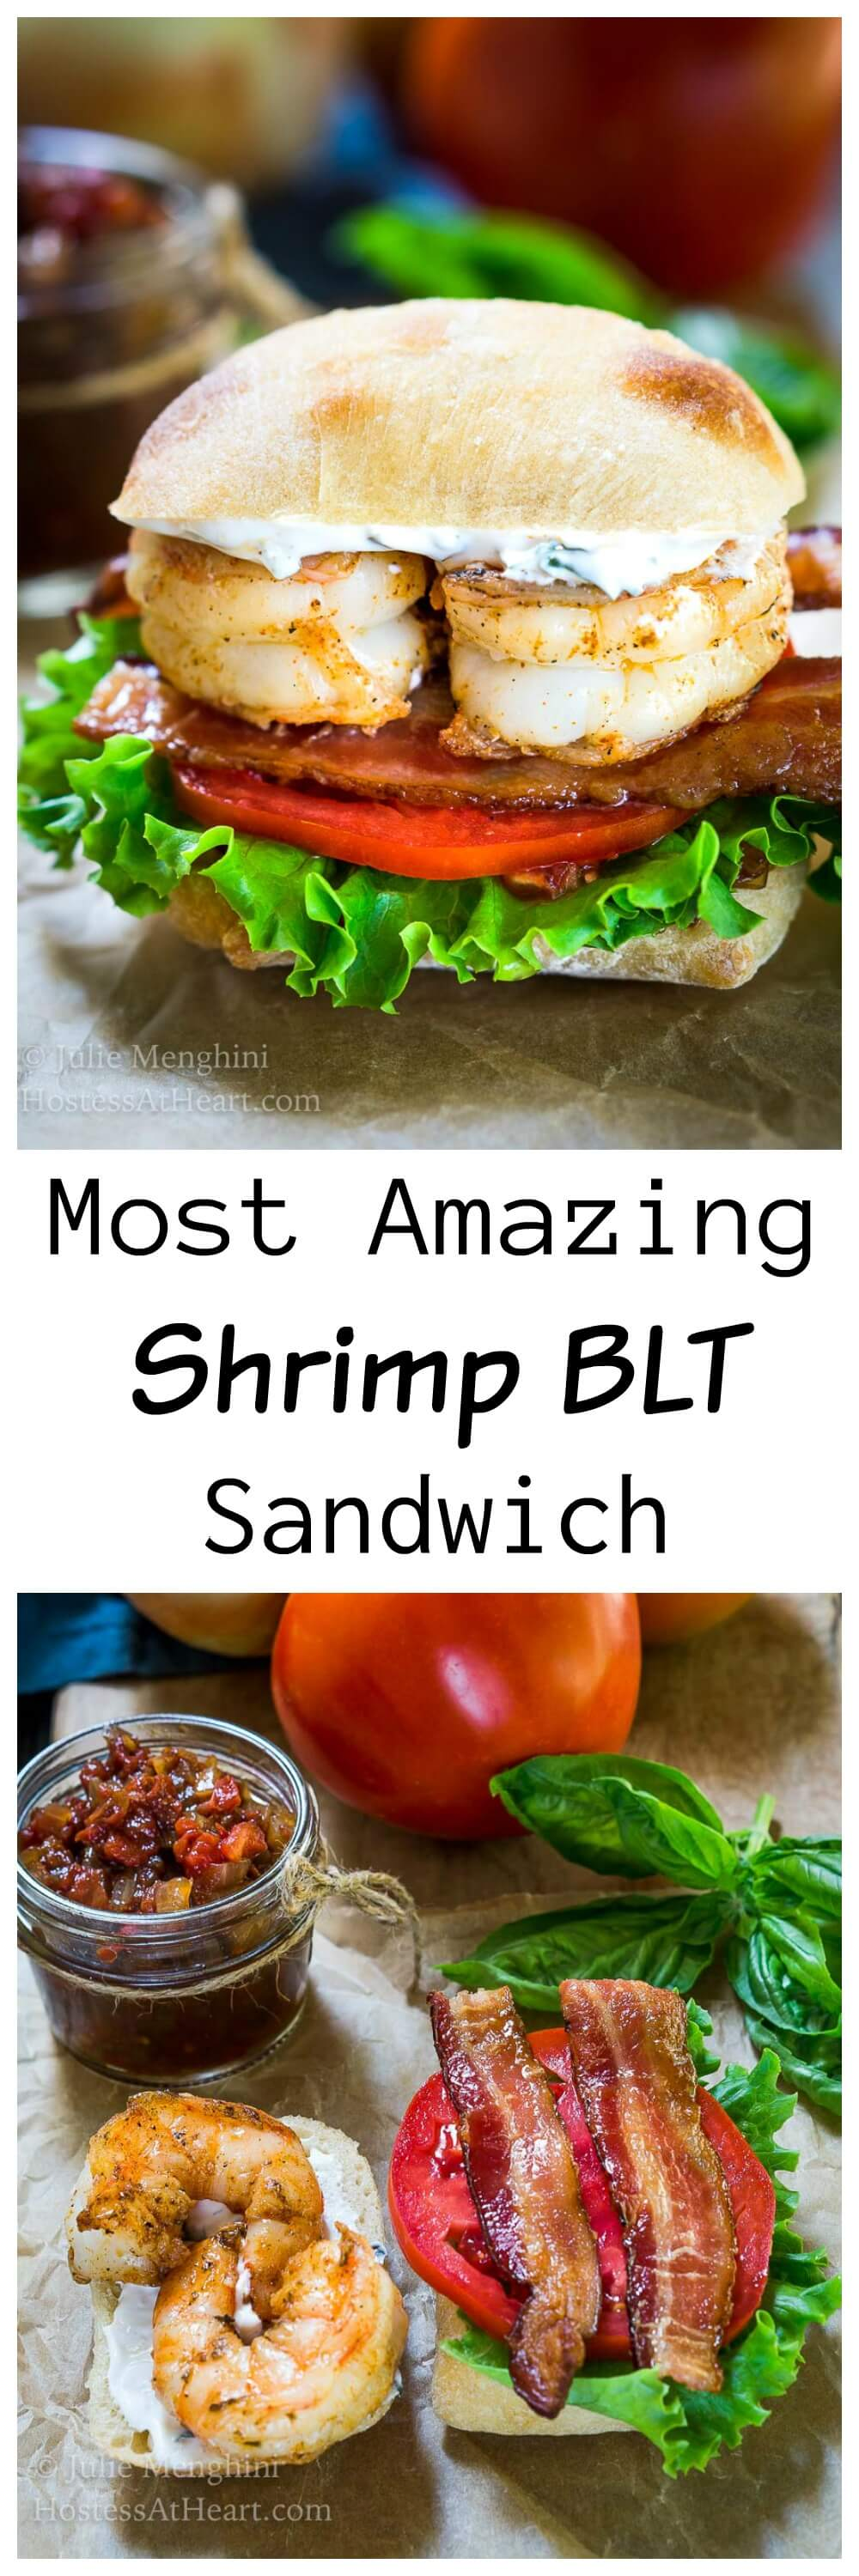 The Most Amazing Shrimp BLT Sandwich is the very best sandwich that we have ever had.  It is an explosion of flavors, textures, and deliciousness! | HostessAtHeart.com